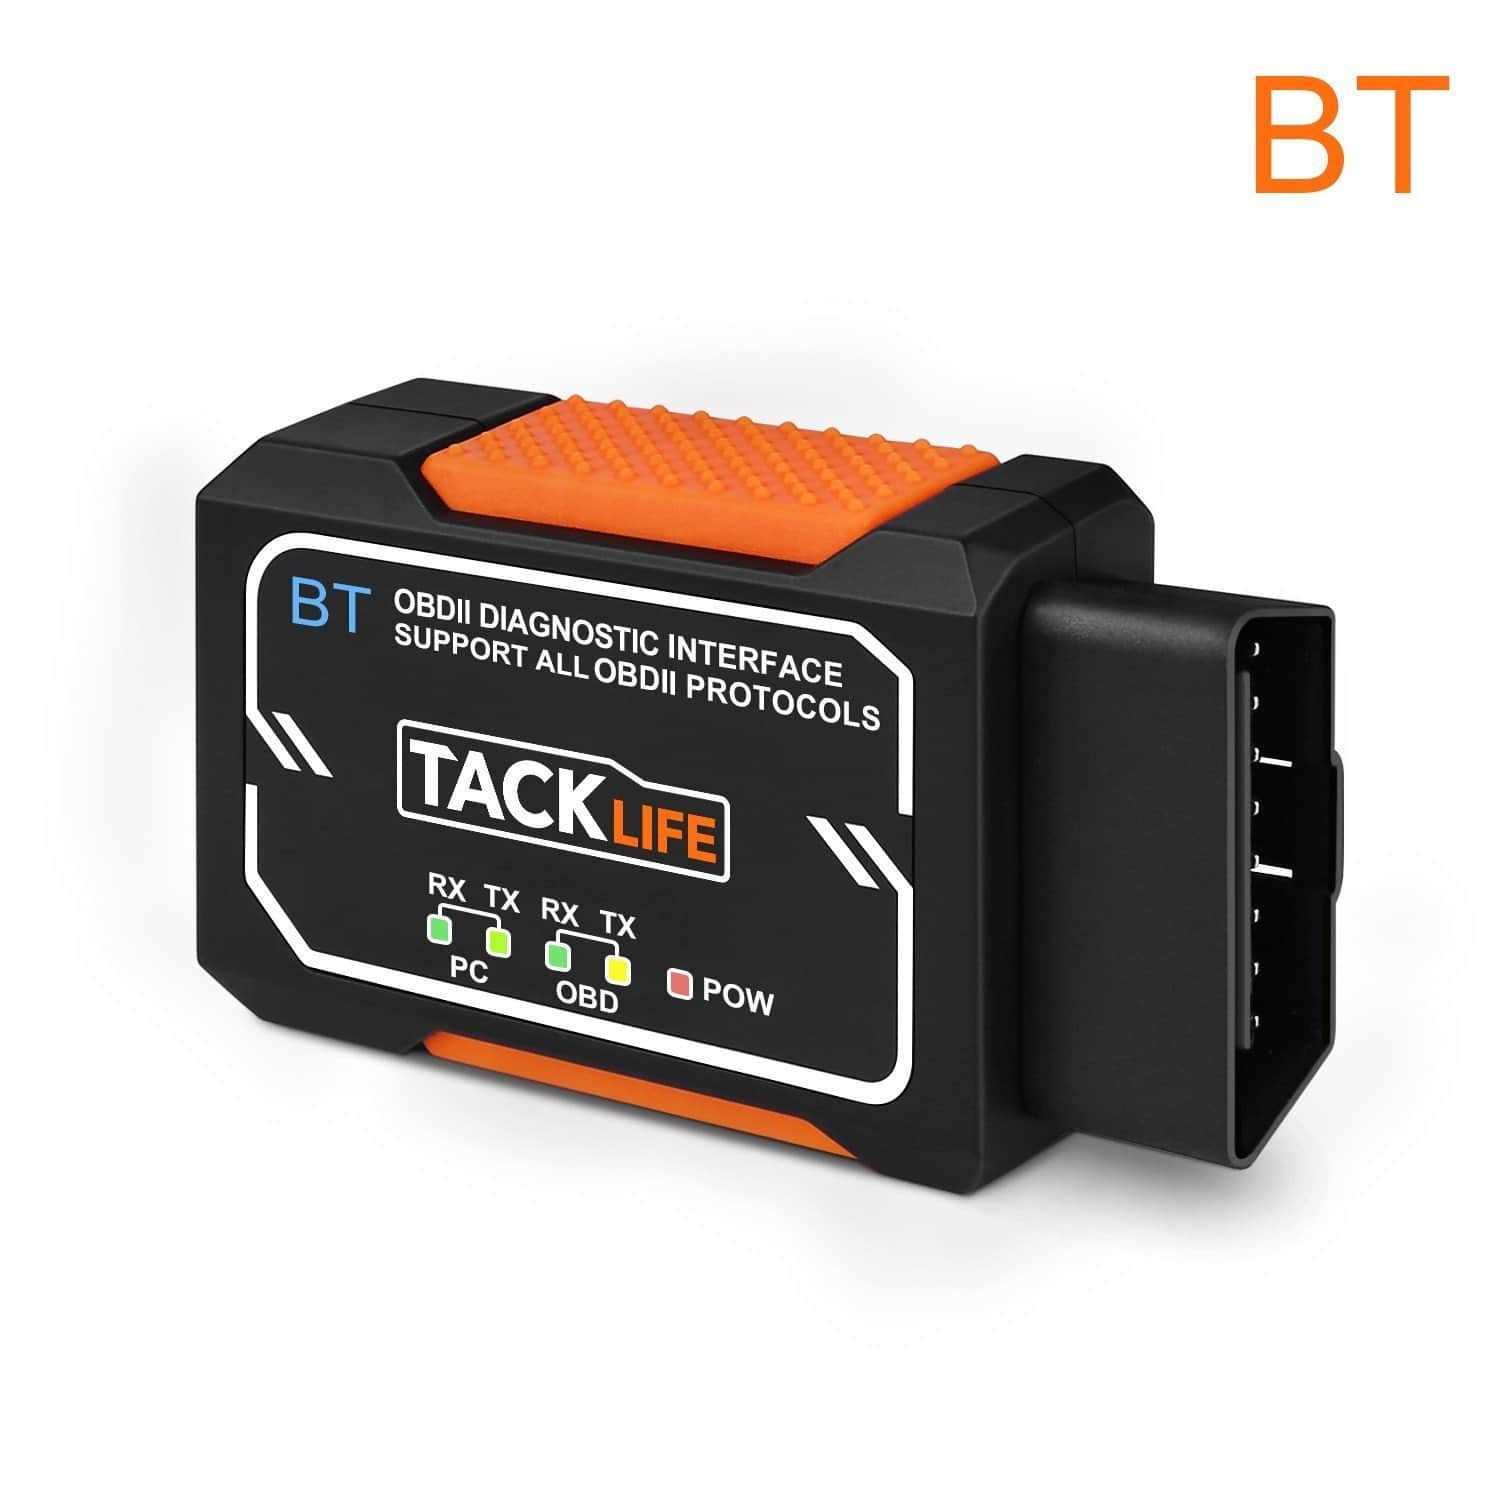 tacklife bluetooth obd2 diagnostic scan tool aobd1b. Black Bedroom Furniture Sets. Home Design Ideas